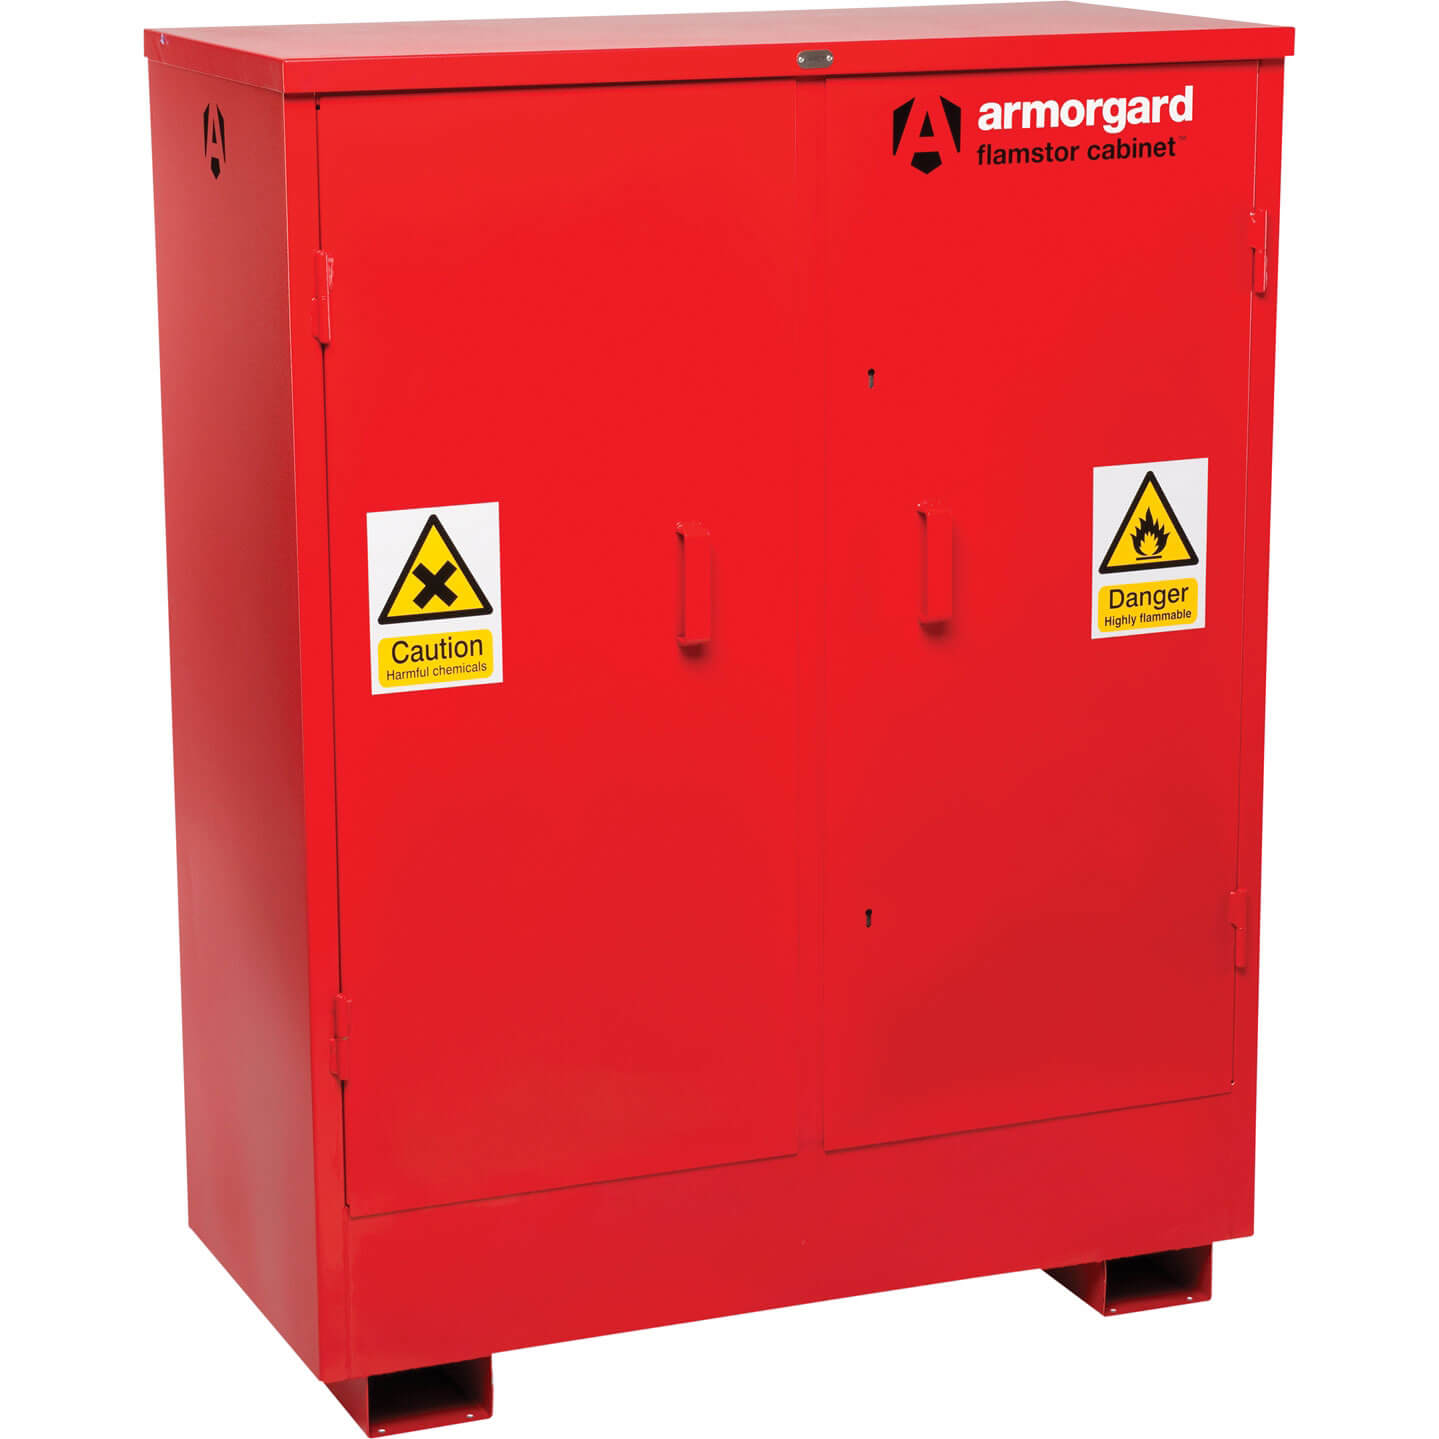 Armorgard Flamstor Chemical & Flammables Storage Cabinet 120cm x 55cm x 150cm